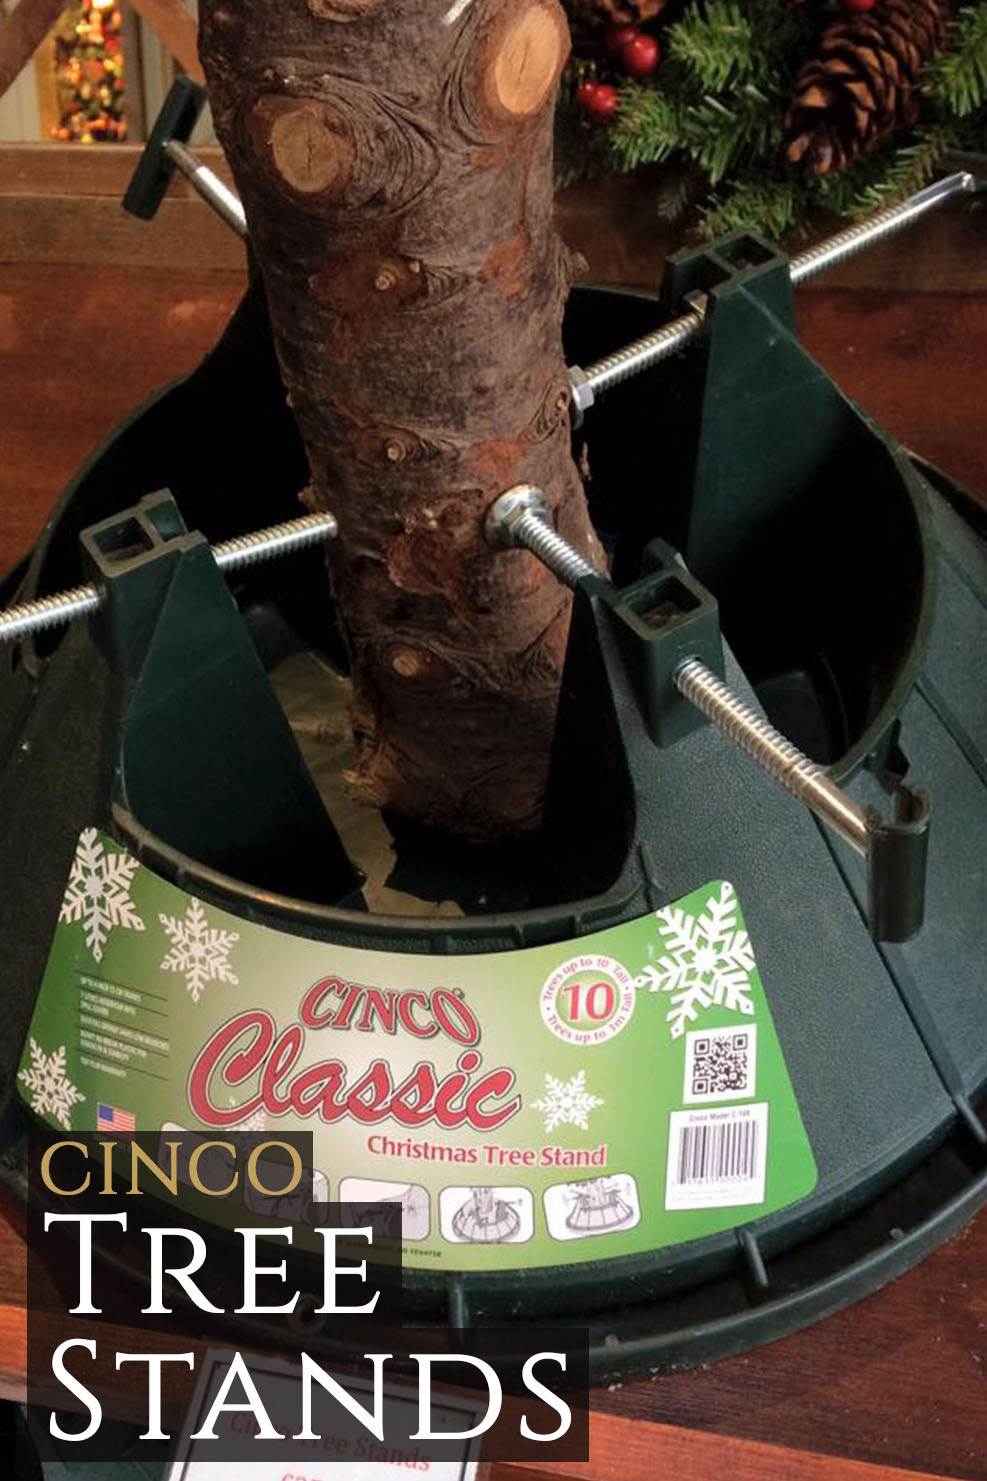 Christmas Tree Stand.Cinco Tree Stands